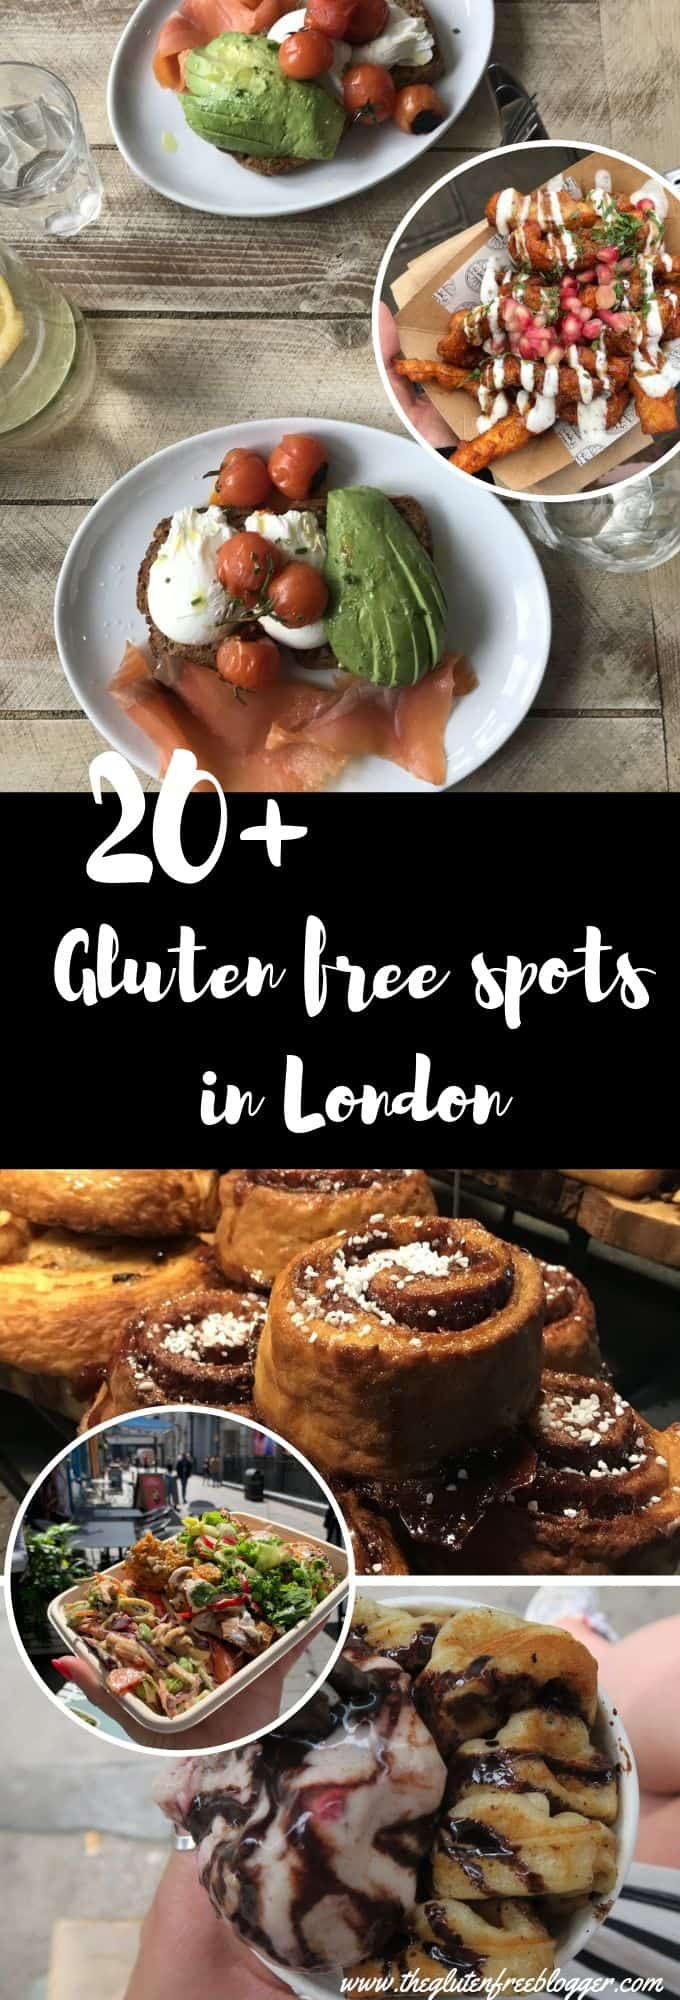 gluten free places to eat in London, UK, with coeliac disease (1)